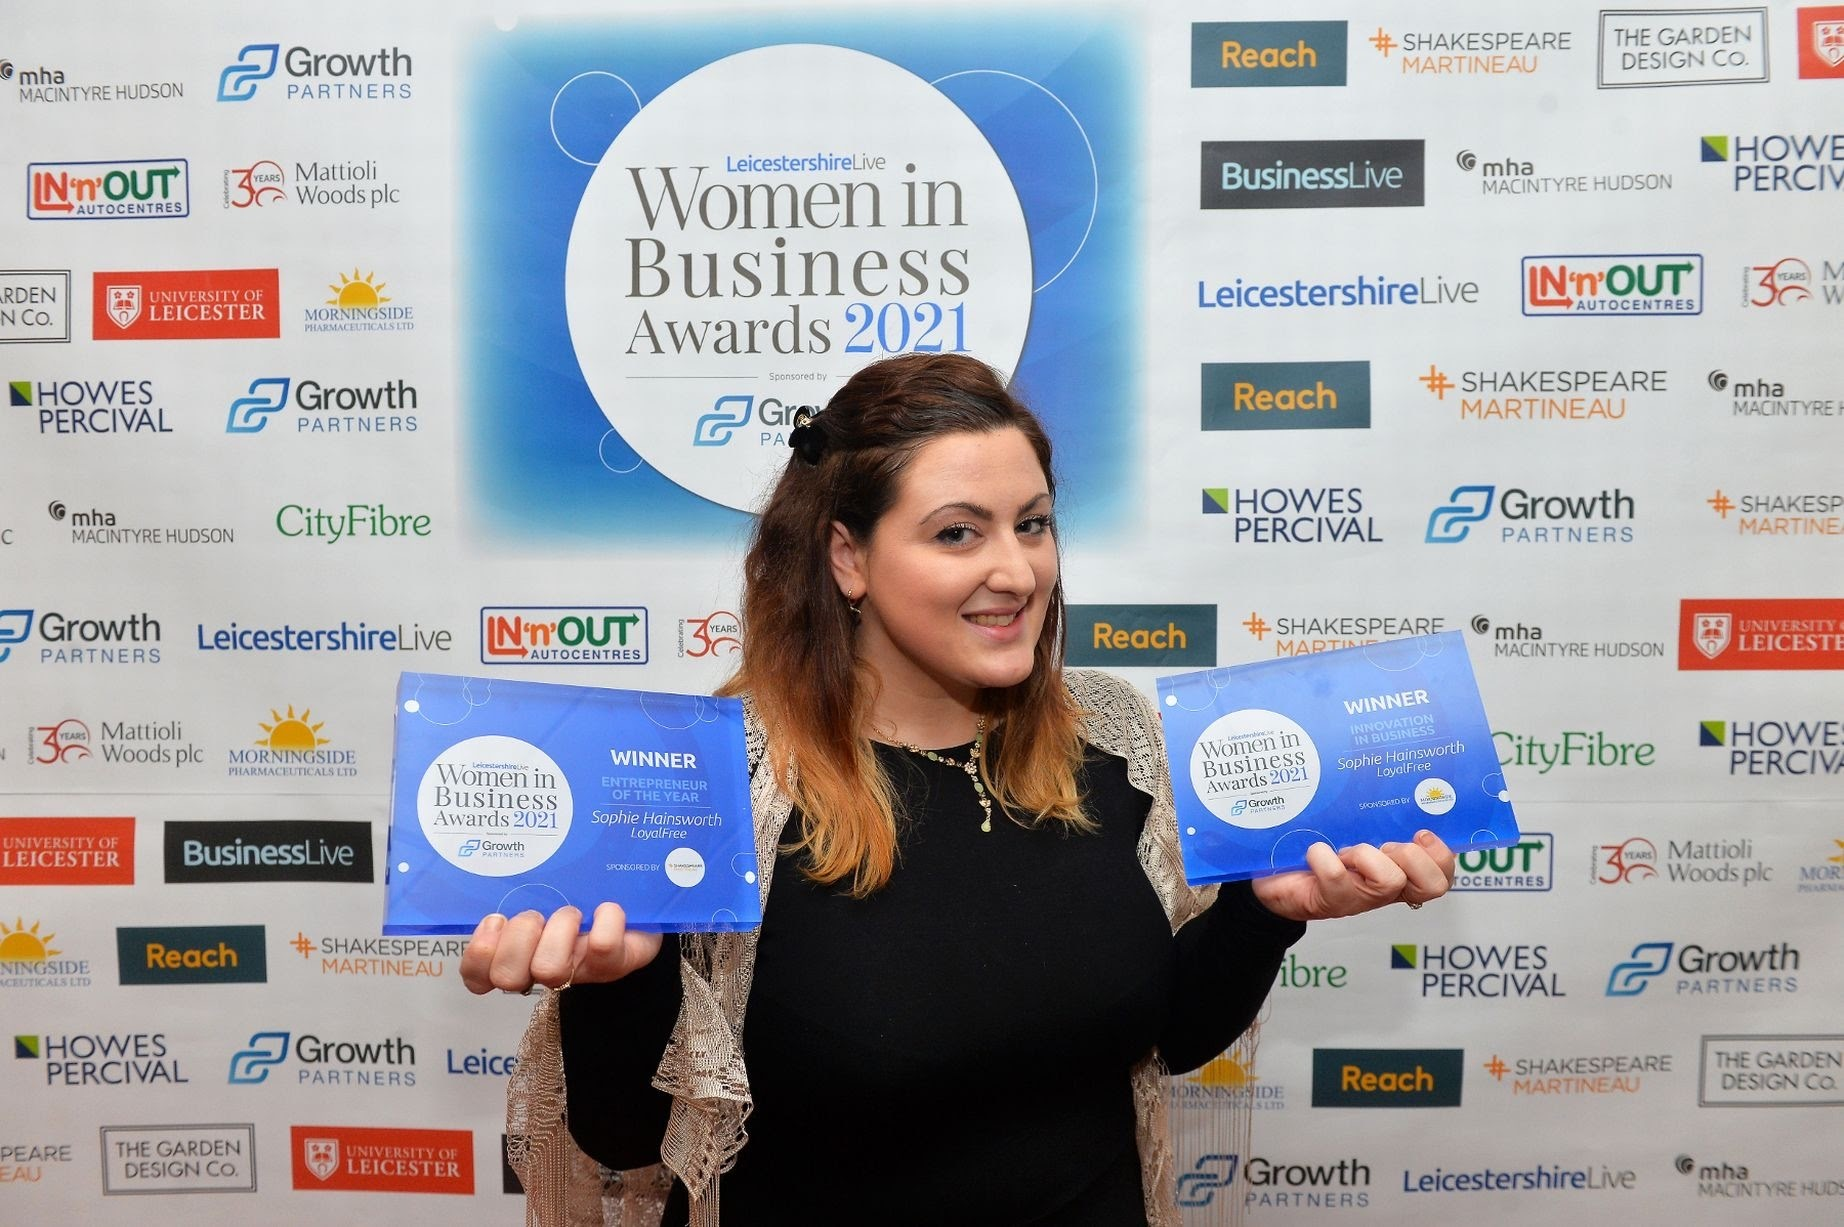 High street hero Sophie Hainsworth bags a double awards win